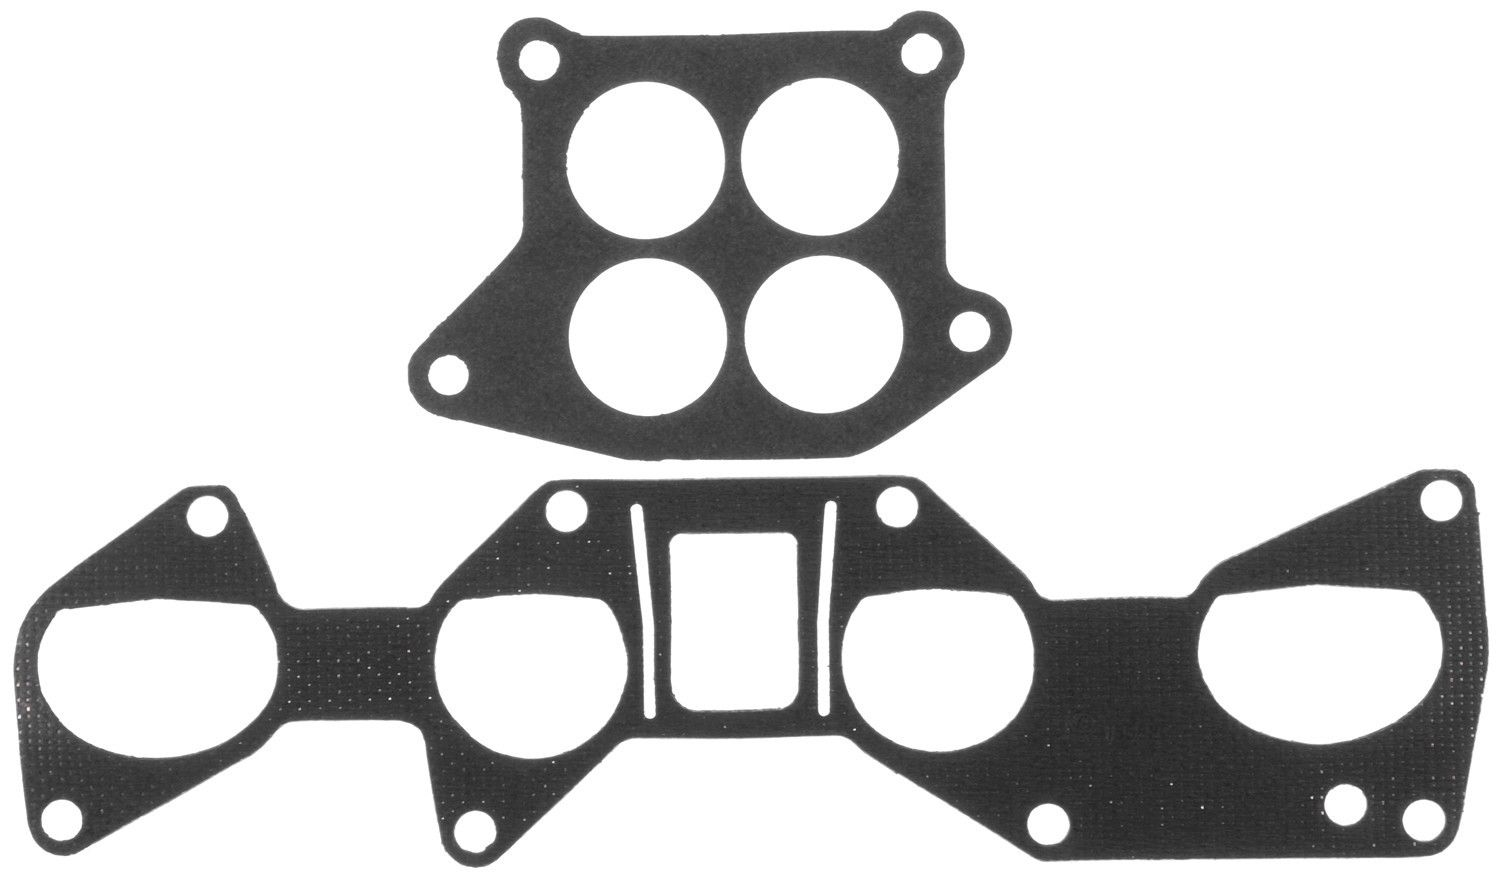 1985 Through 1990 Ford 2.3L OHC Engine Intake Manifold Gasket Set Mahle MS15582W